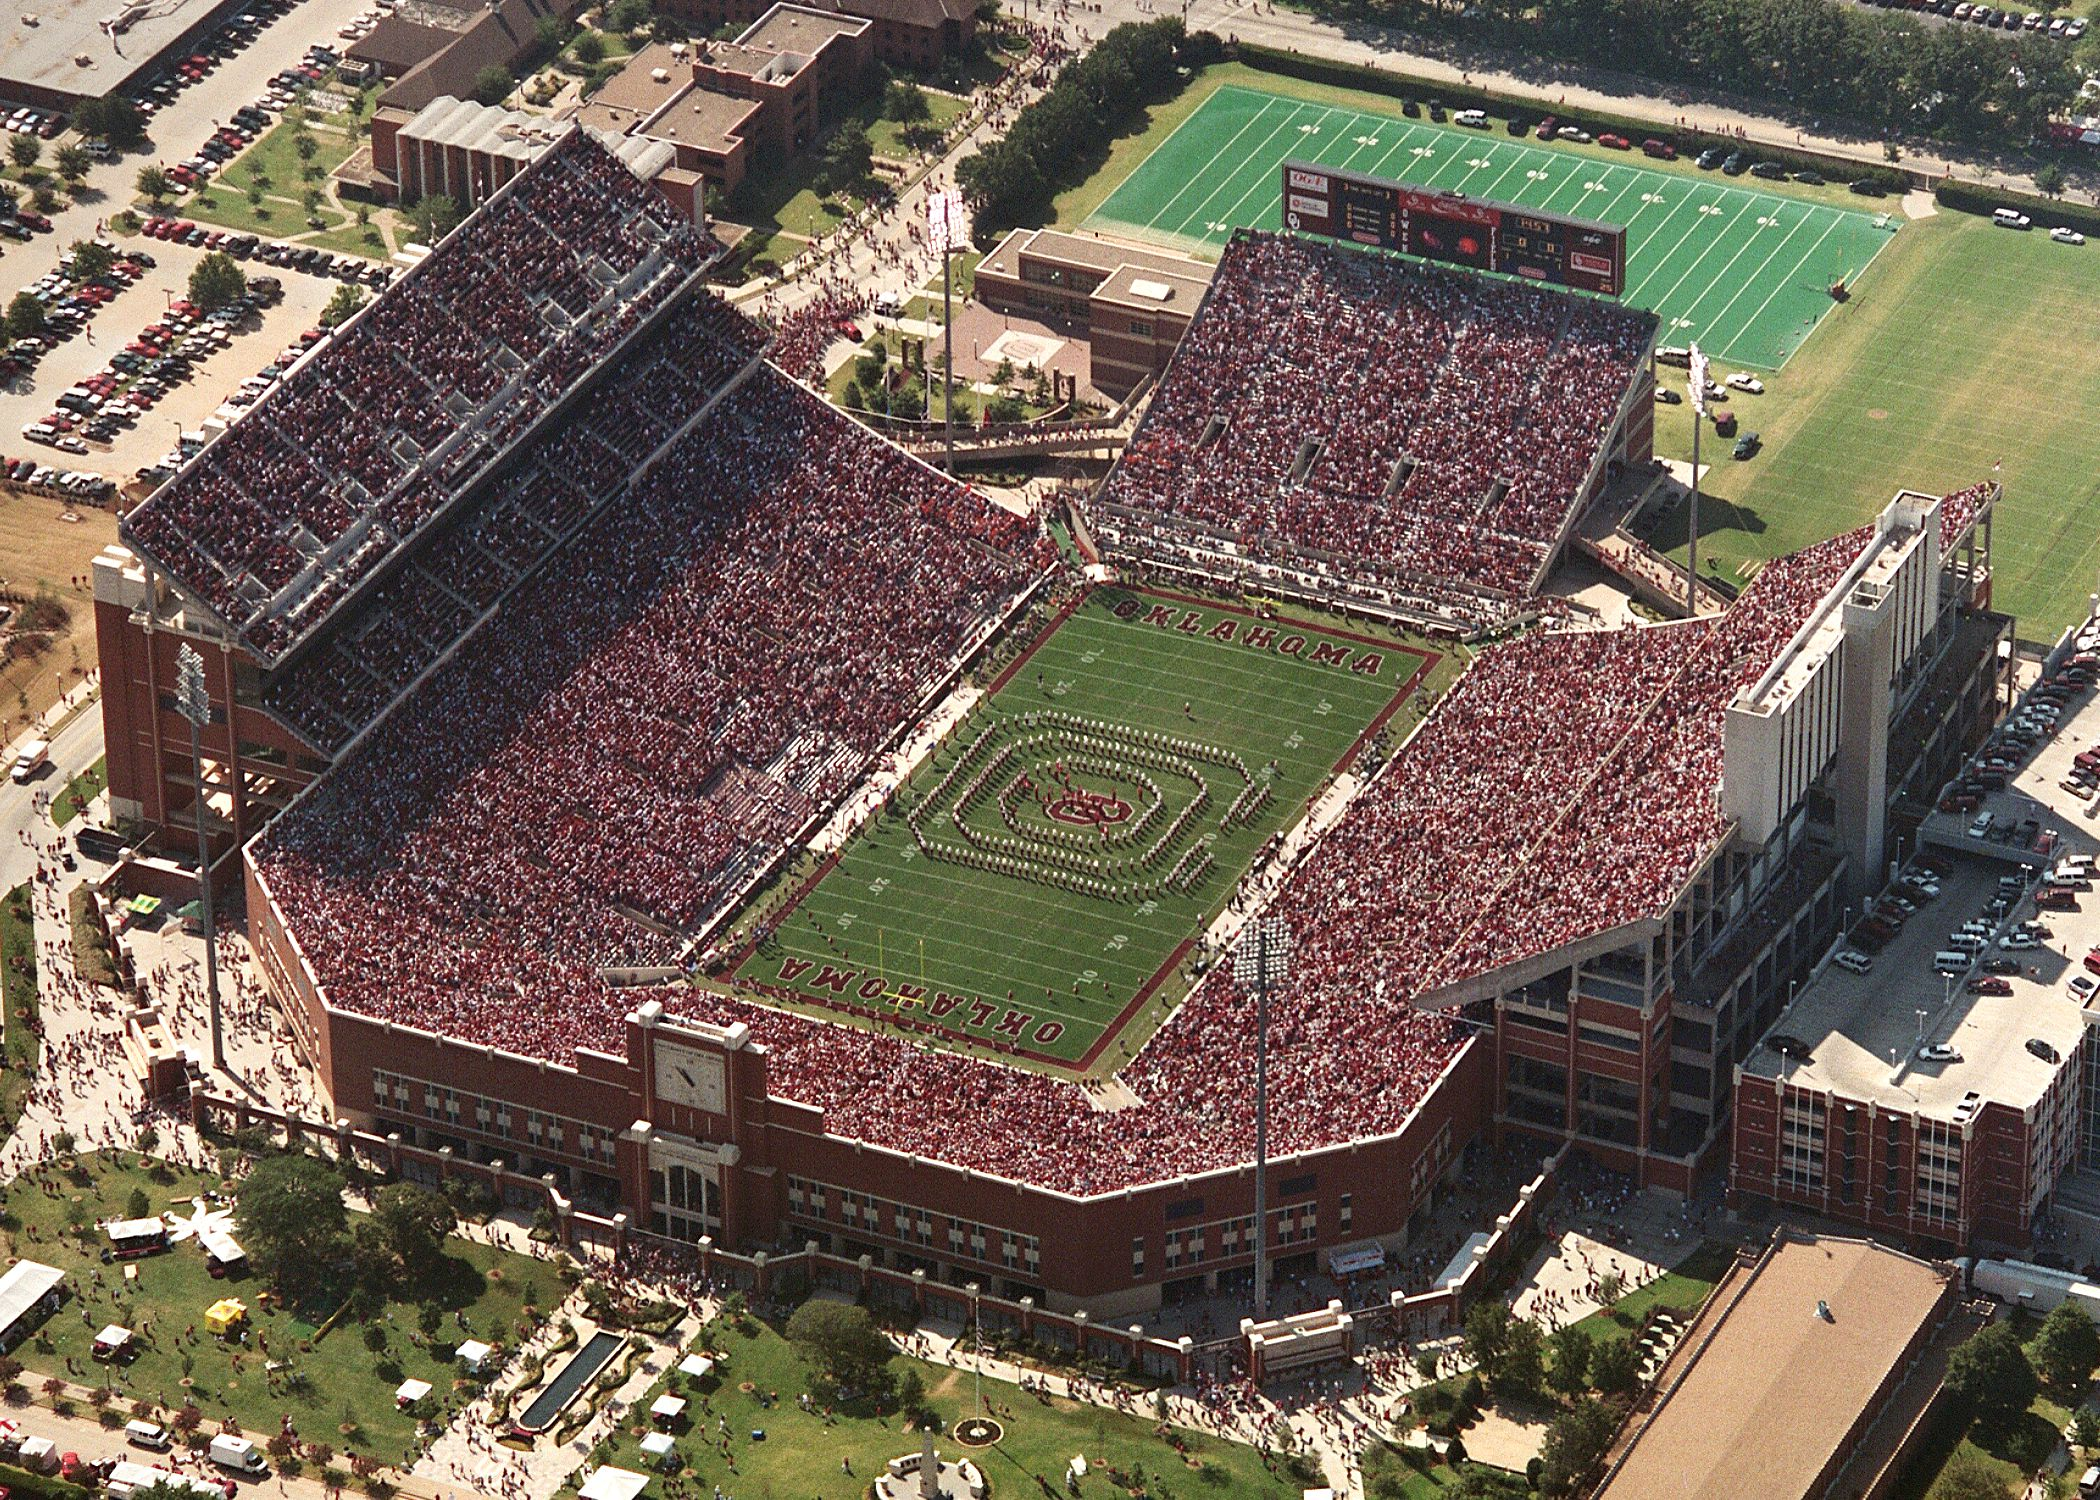 Pin By Barbara Webster On Football Stadiums Visited Football Stadiums Oklahoma Football Oklahoma Memorial